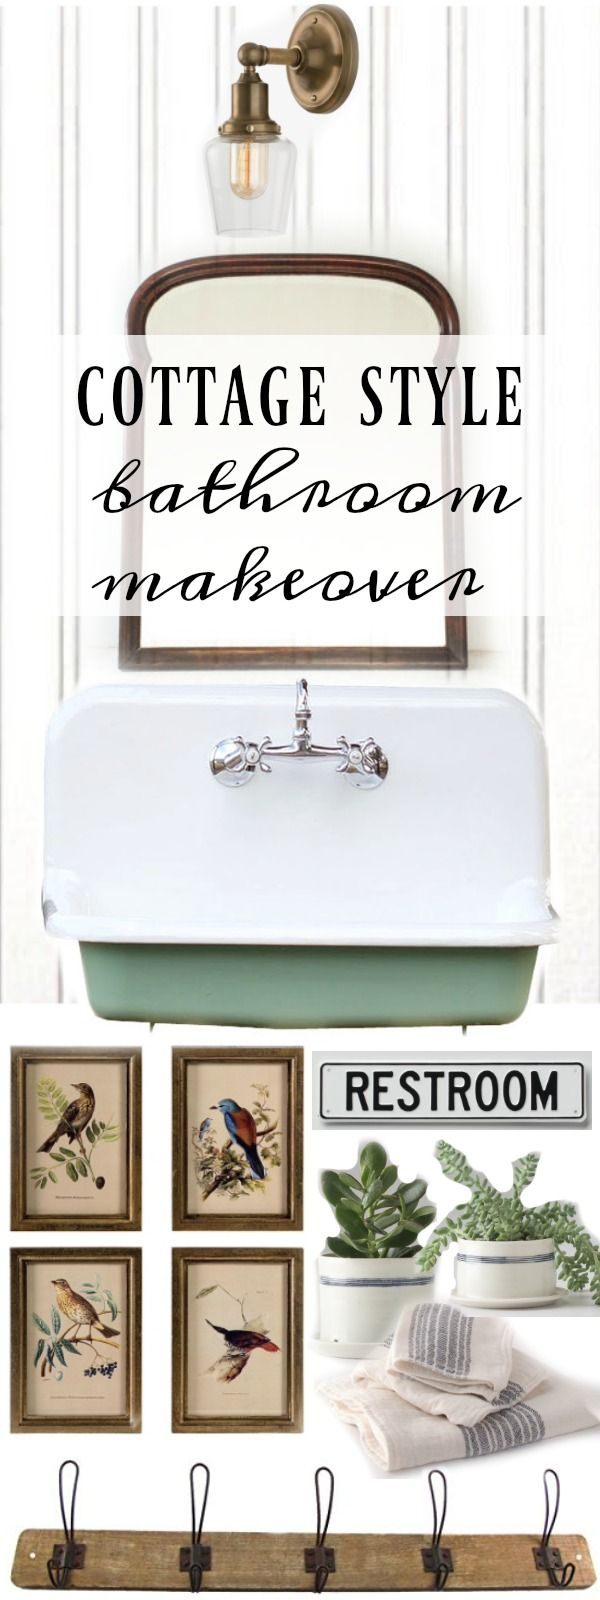 Cottage Style Bathroom Makeover Ideas - mood boards were created, using ideas for lighting, fixtures and decor - they give you an idea of what your space will look like - via Liz Marie Blog